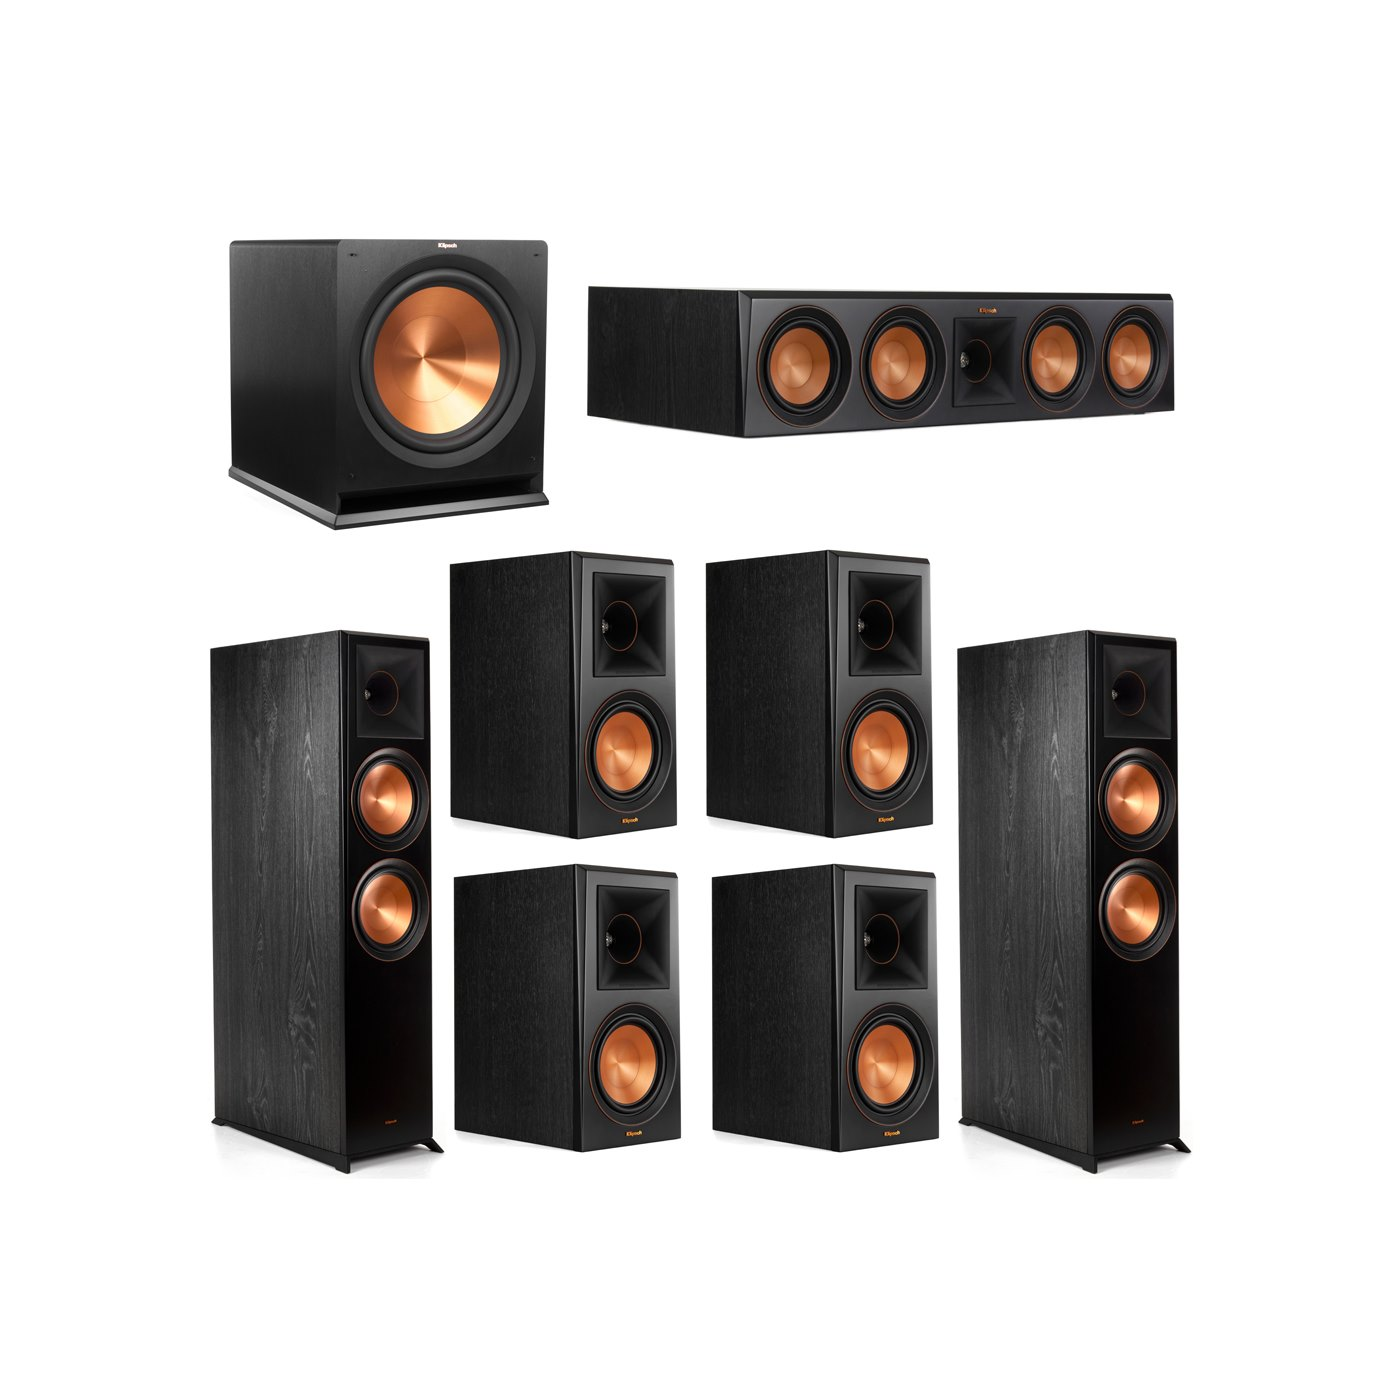 Klipsch 7.1 System with 2 RP-8000F Floorstanding Speakers, 1 Klipsch RP-504C Center Speaker, 4 Klipsch RP-600M Surround Speakers, 1 Klipsch R-115SW Subwoofer